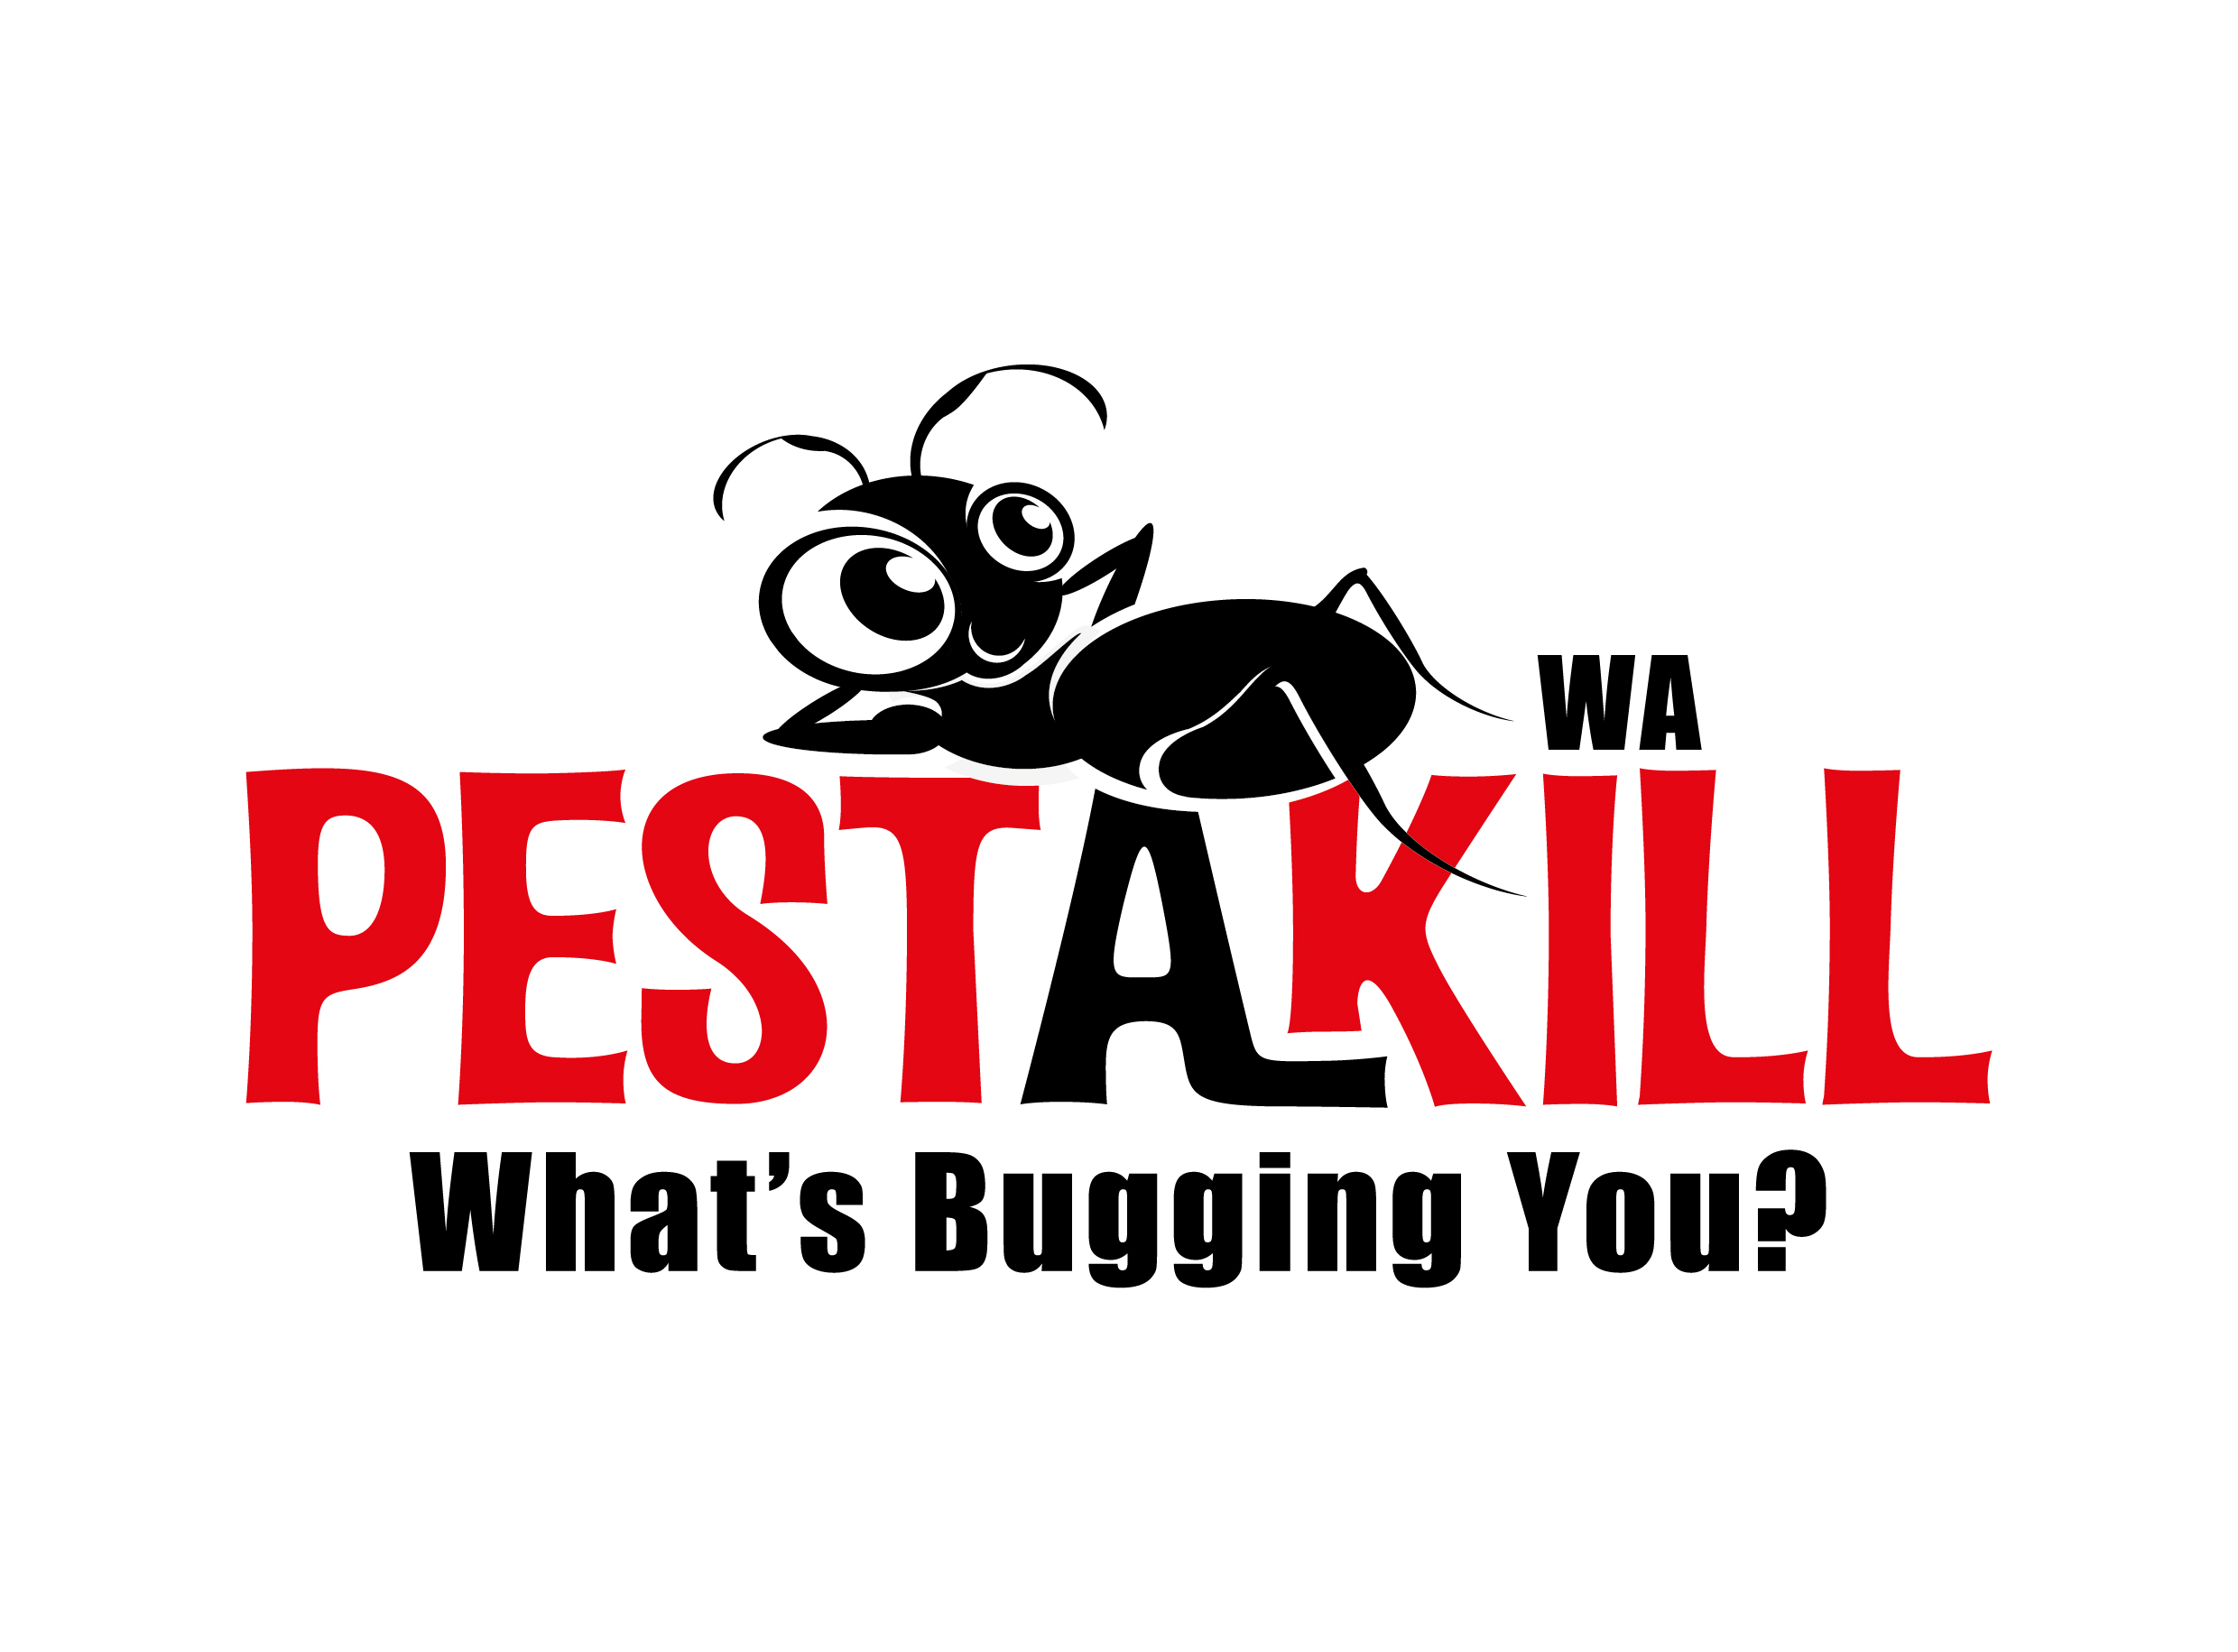 Pest-A-Kill WA - Geraldton, WA 6530 - (08) 9965 3330 | ShowMeLocal.com